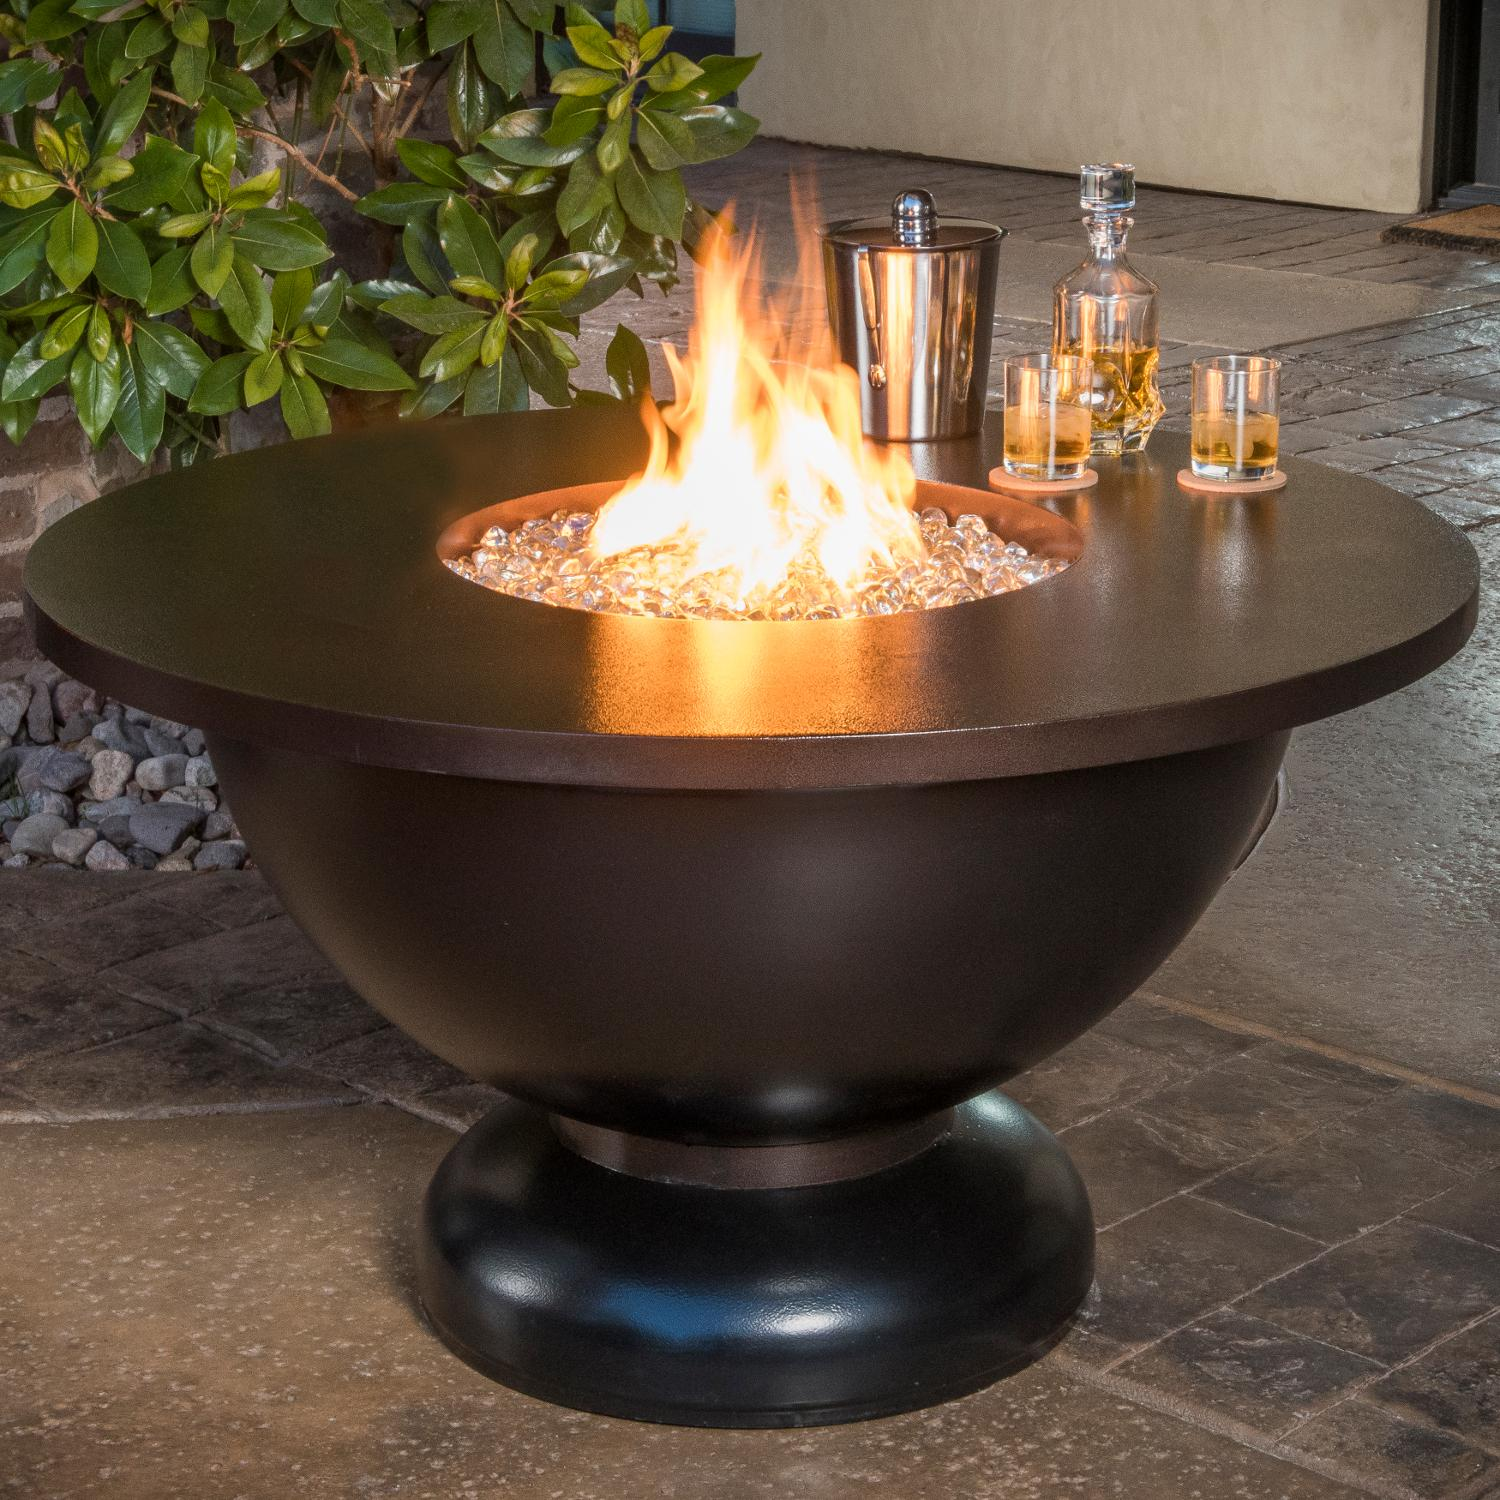 Cc products modish bowl inch round natural gas fire table black